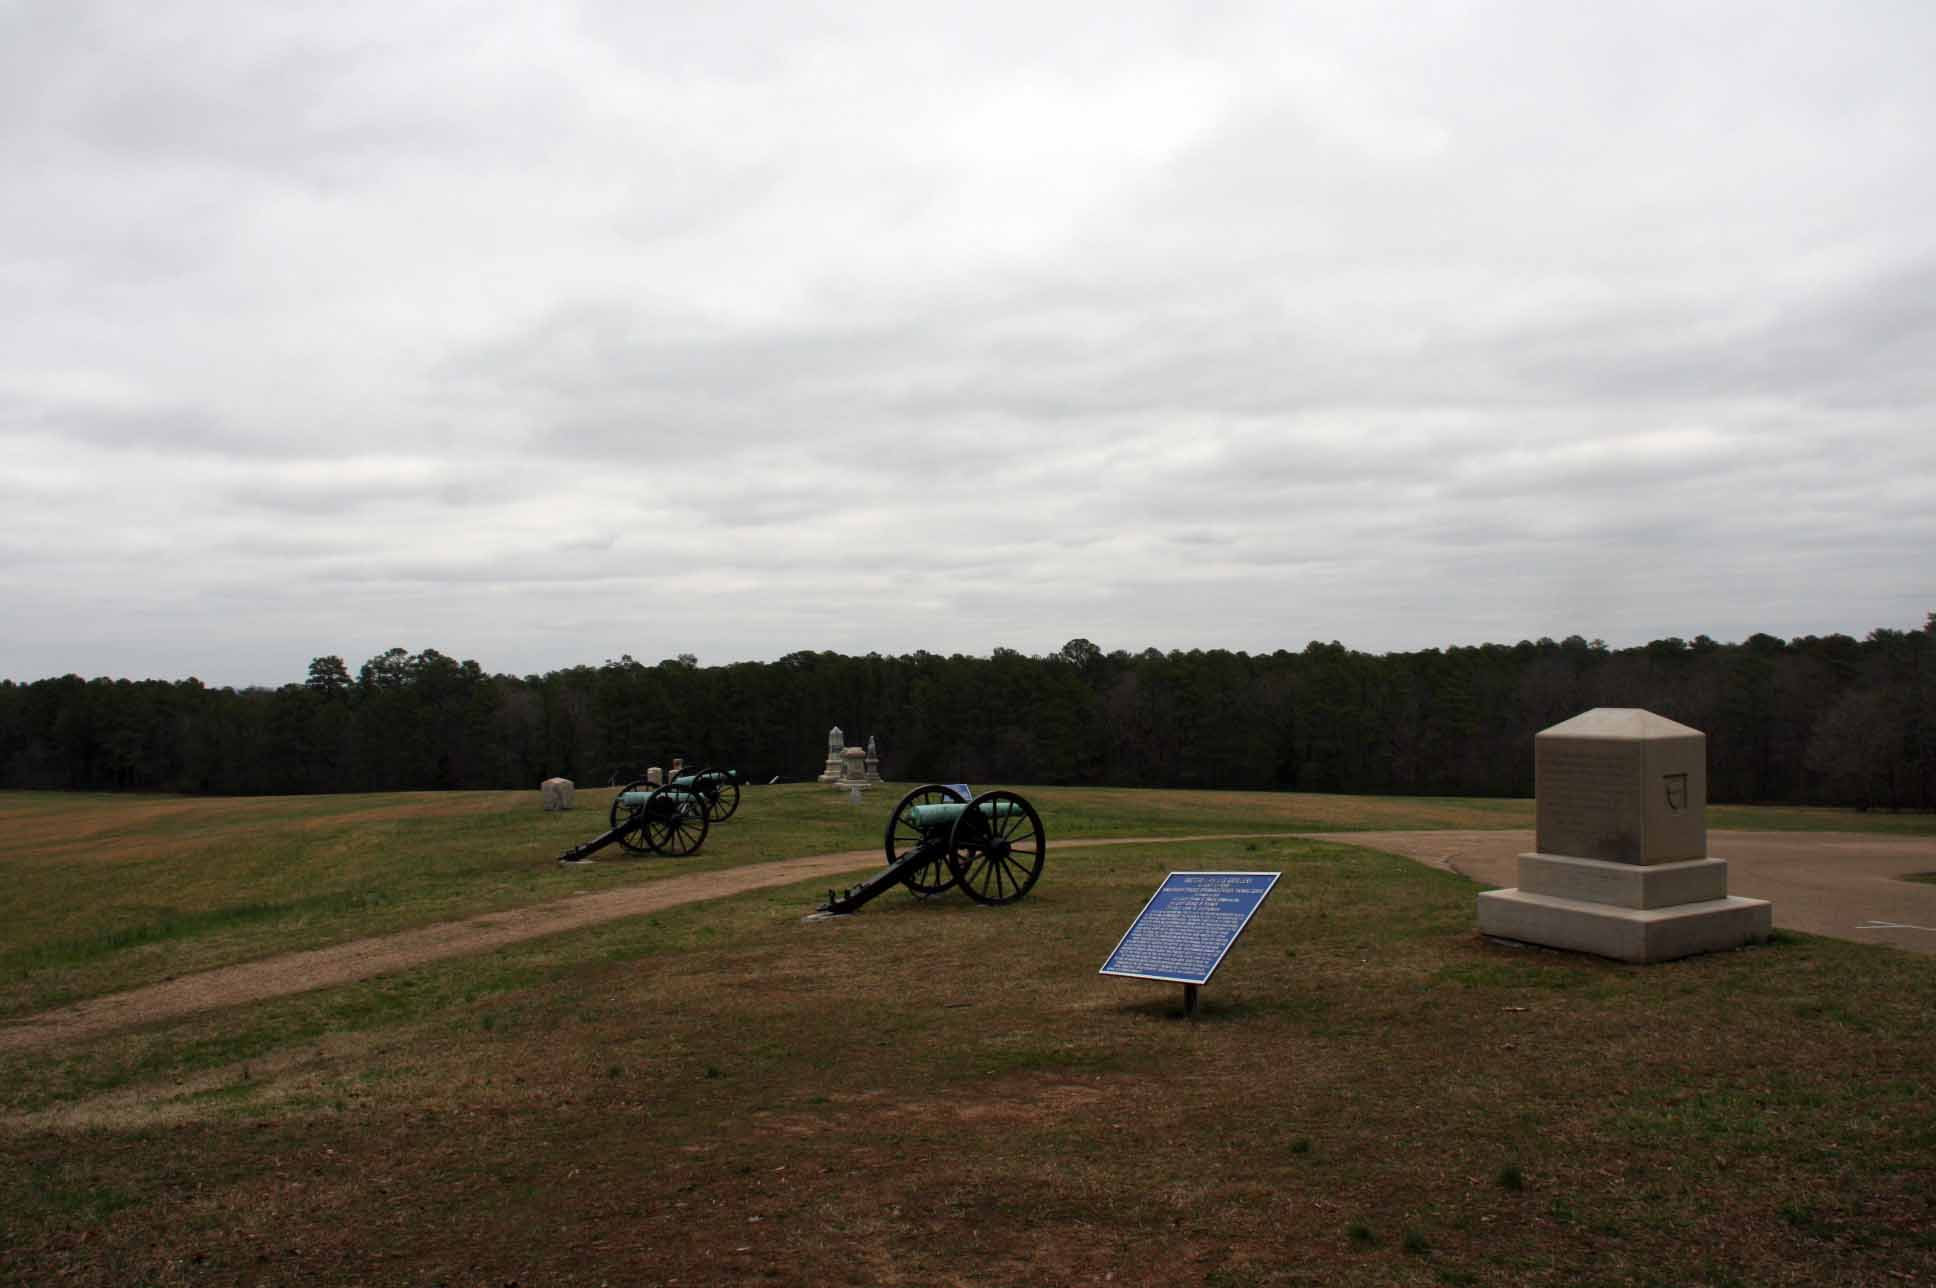 4th U.S. Artillery, Battery I, Tablet, click photo to enlarge.